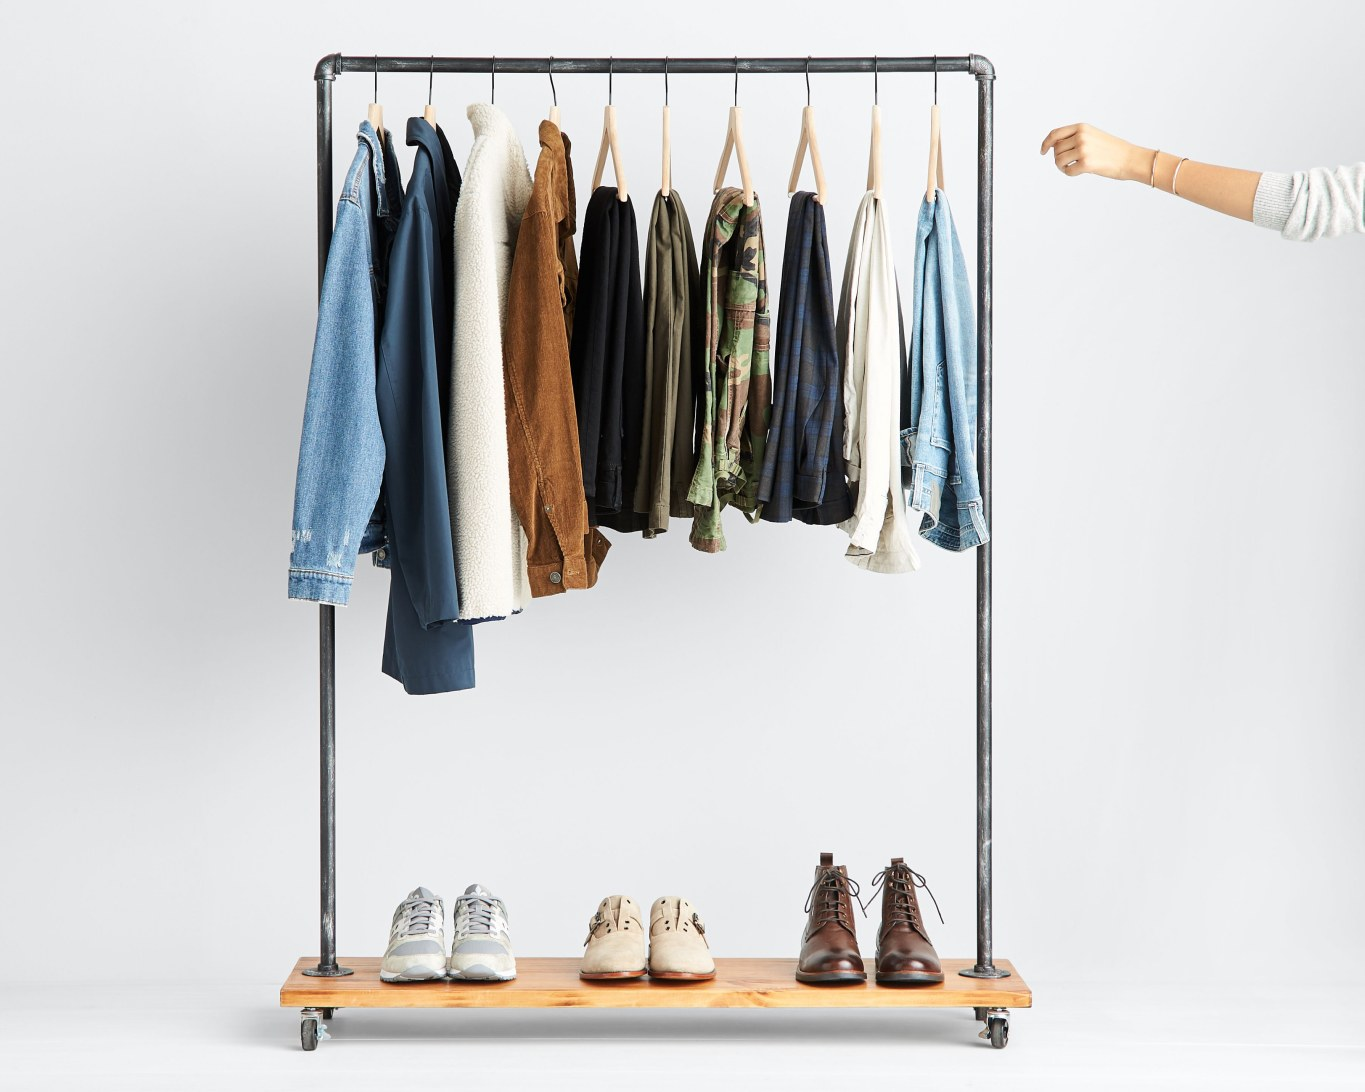 Stitch Fix expects to deliver net revenue growth of 12 percent to 14 percent year over year in the second quarter, and full-year 2021 revenue growth of 20 percent to 25 percent.